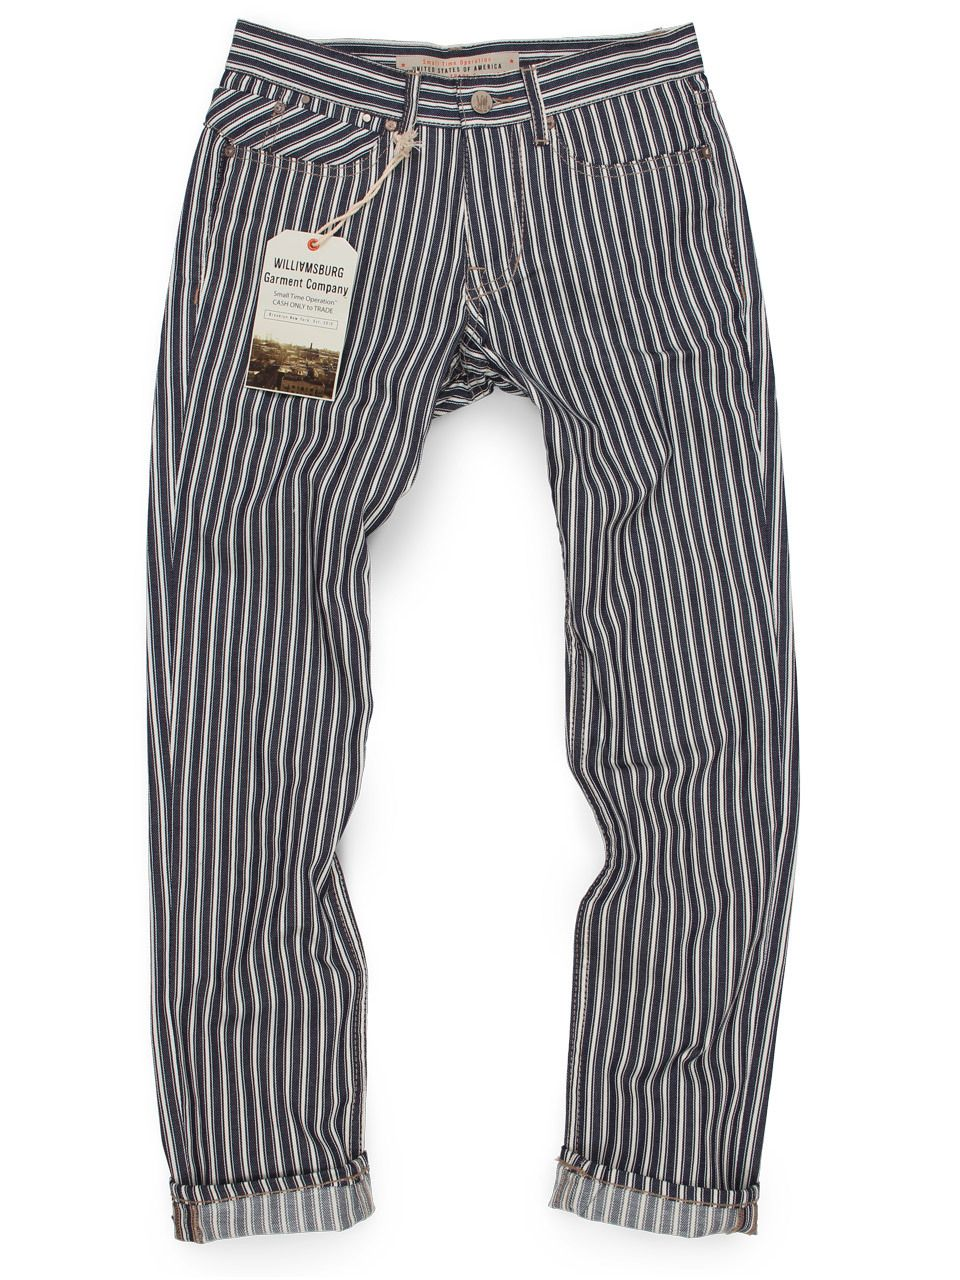 American Made Men's Engineer Stripe Pants (Made in USA painter or ...